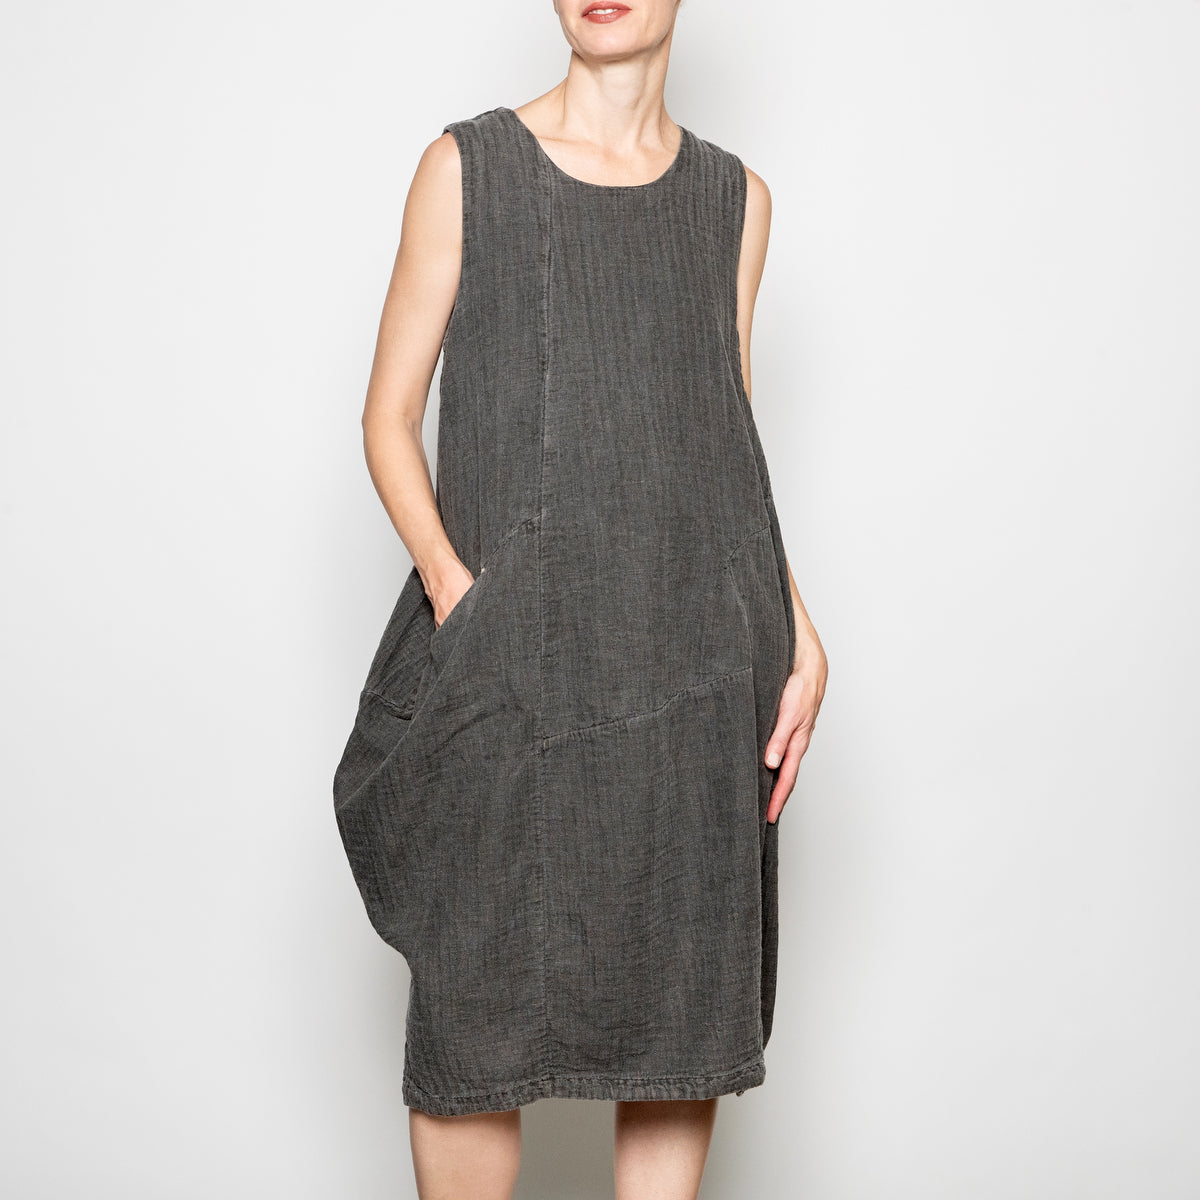 Peacock Ways Lacey Dress in Grey